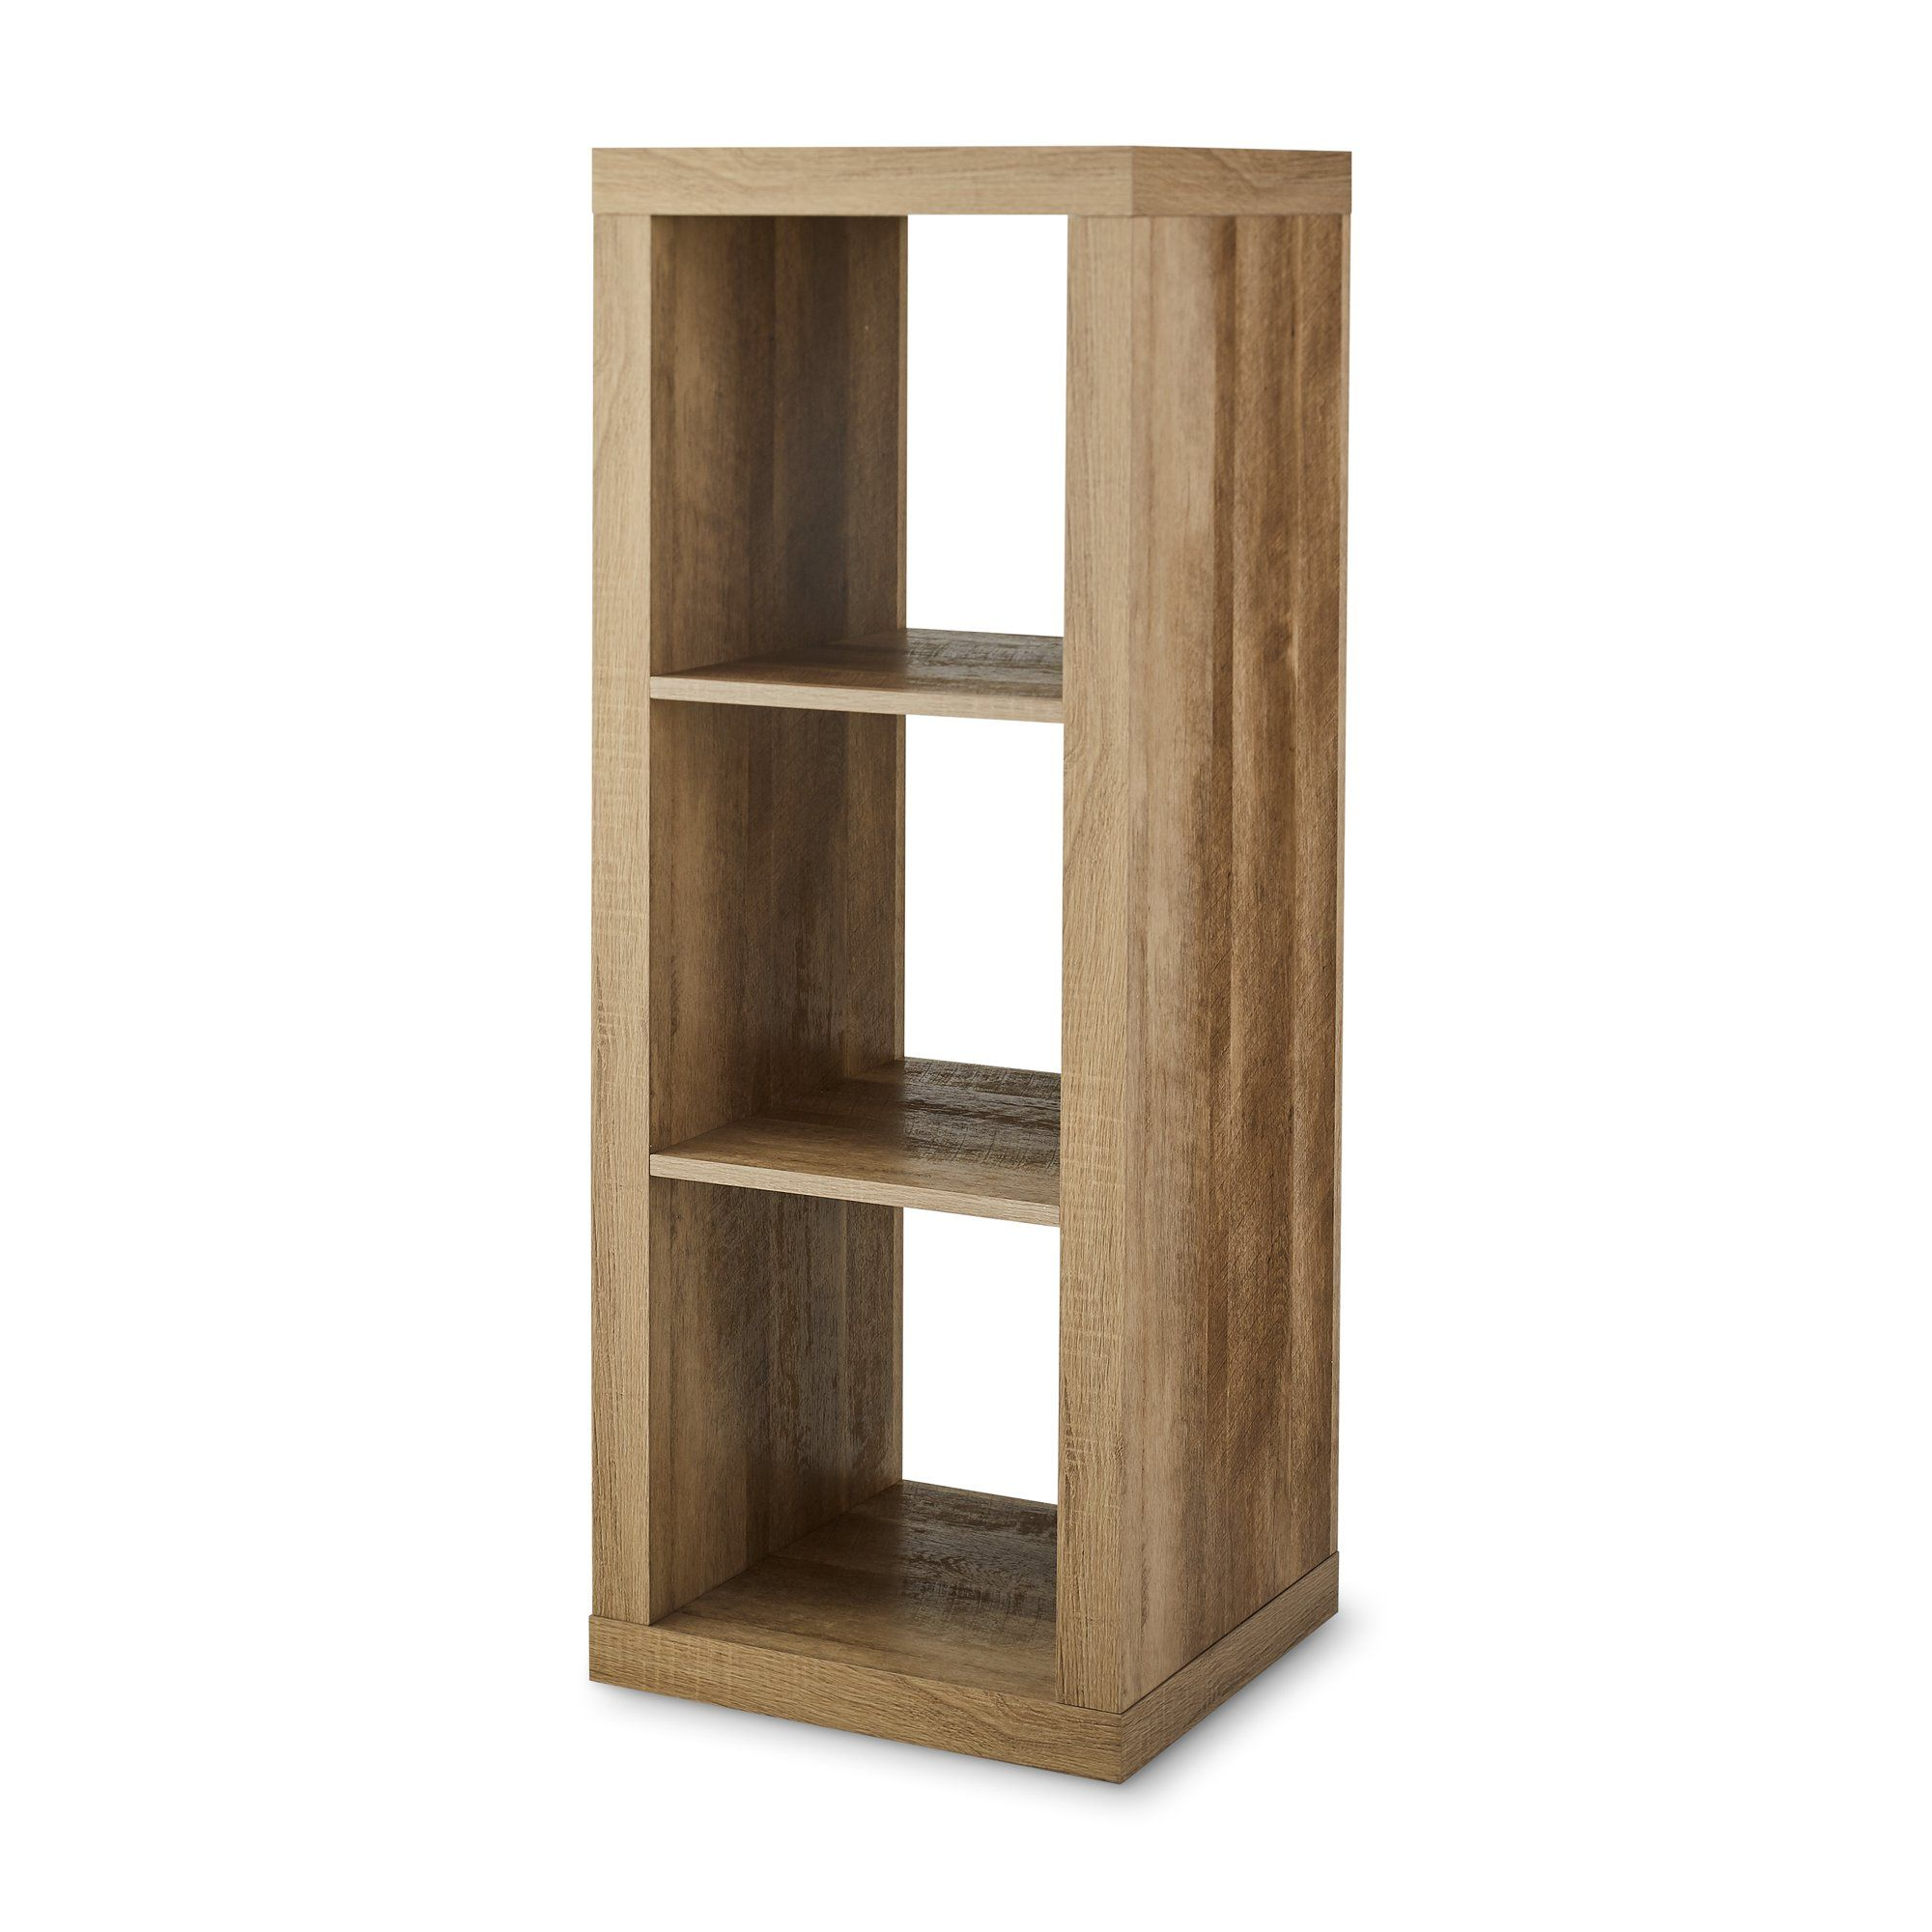 6efc44f2d8be01fd0c90d63728be4545 - Better Homes And Gardens 3 Cube Organizer Bench Weathered